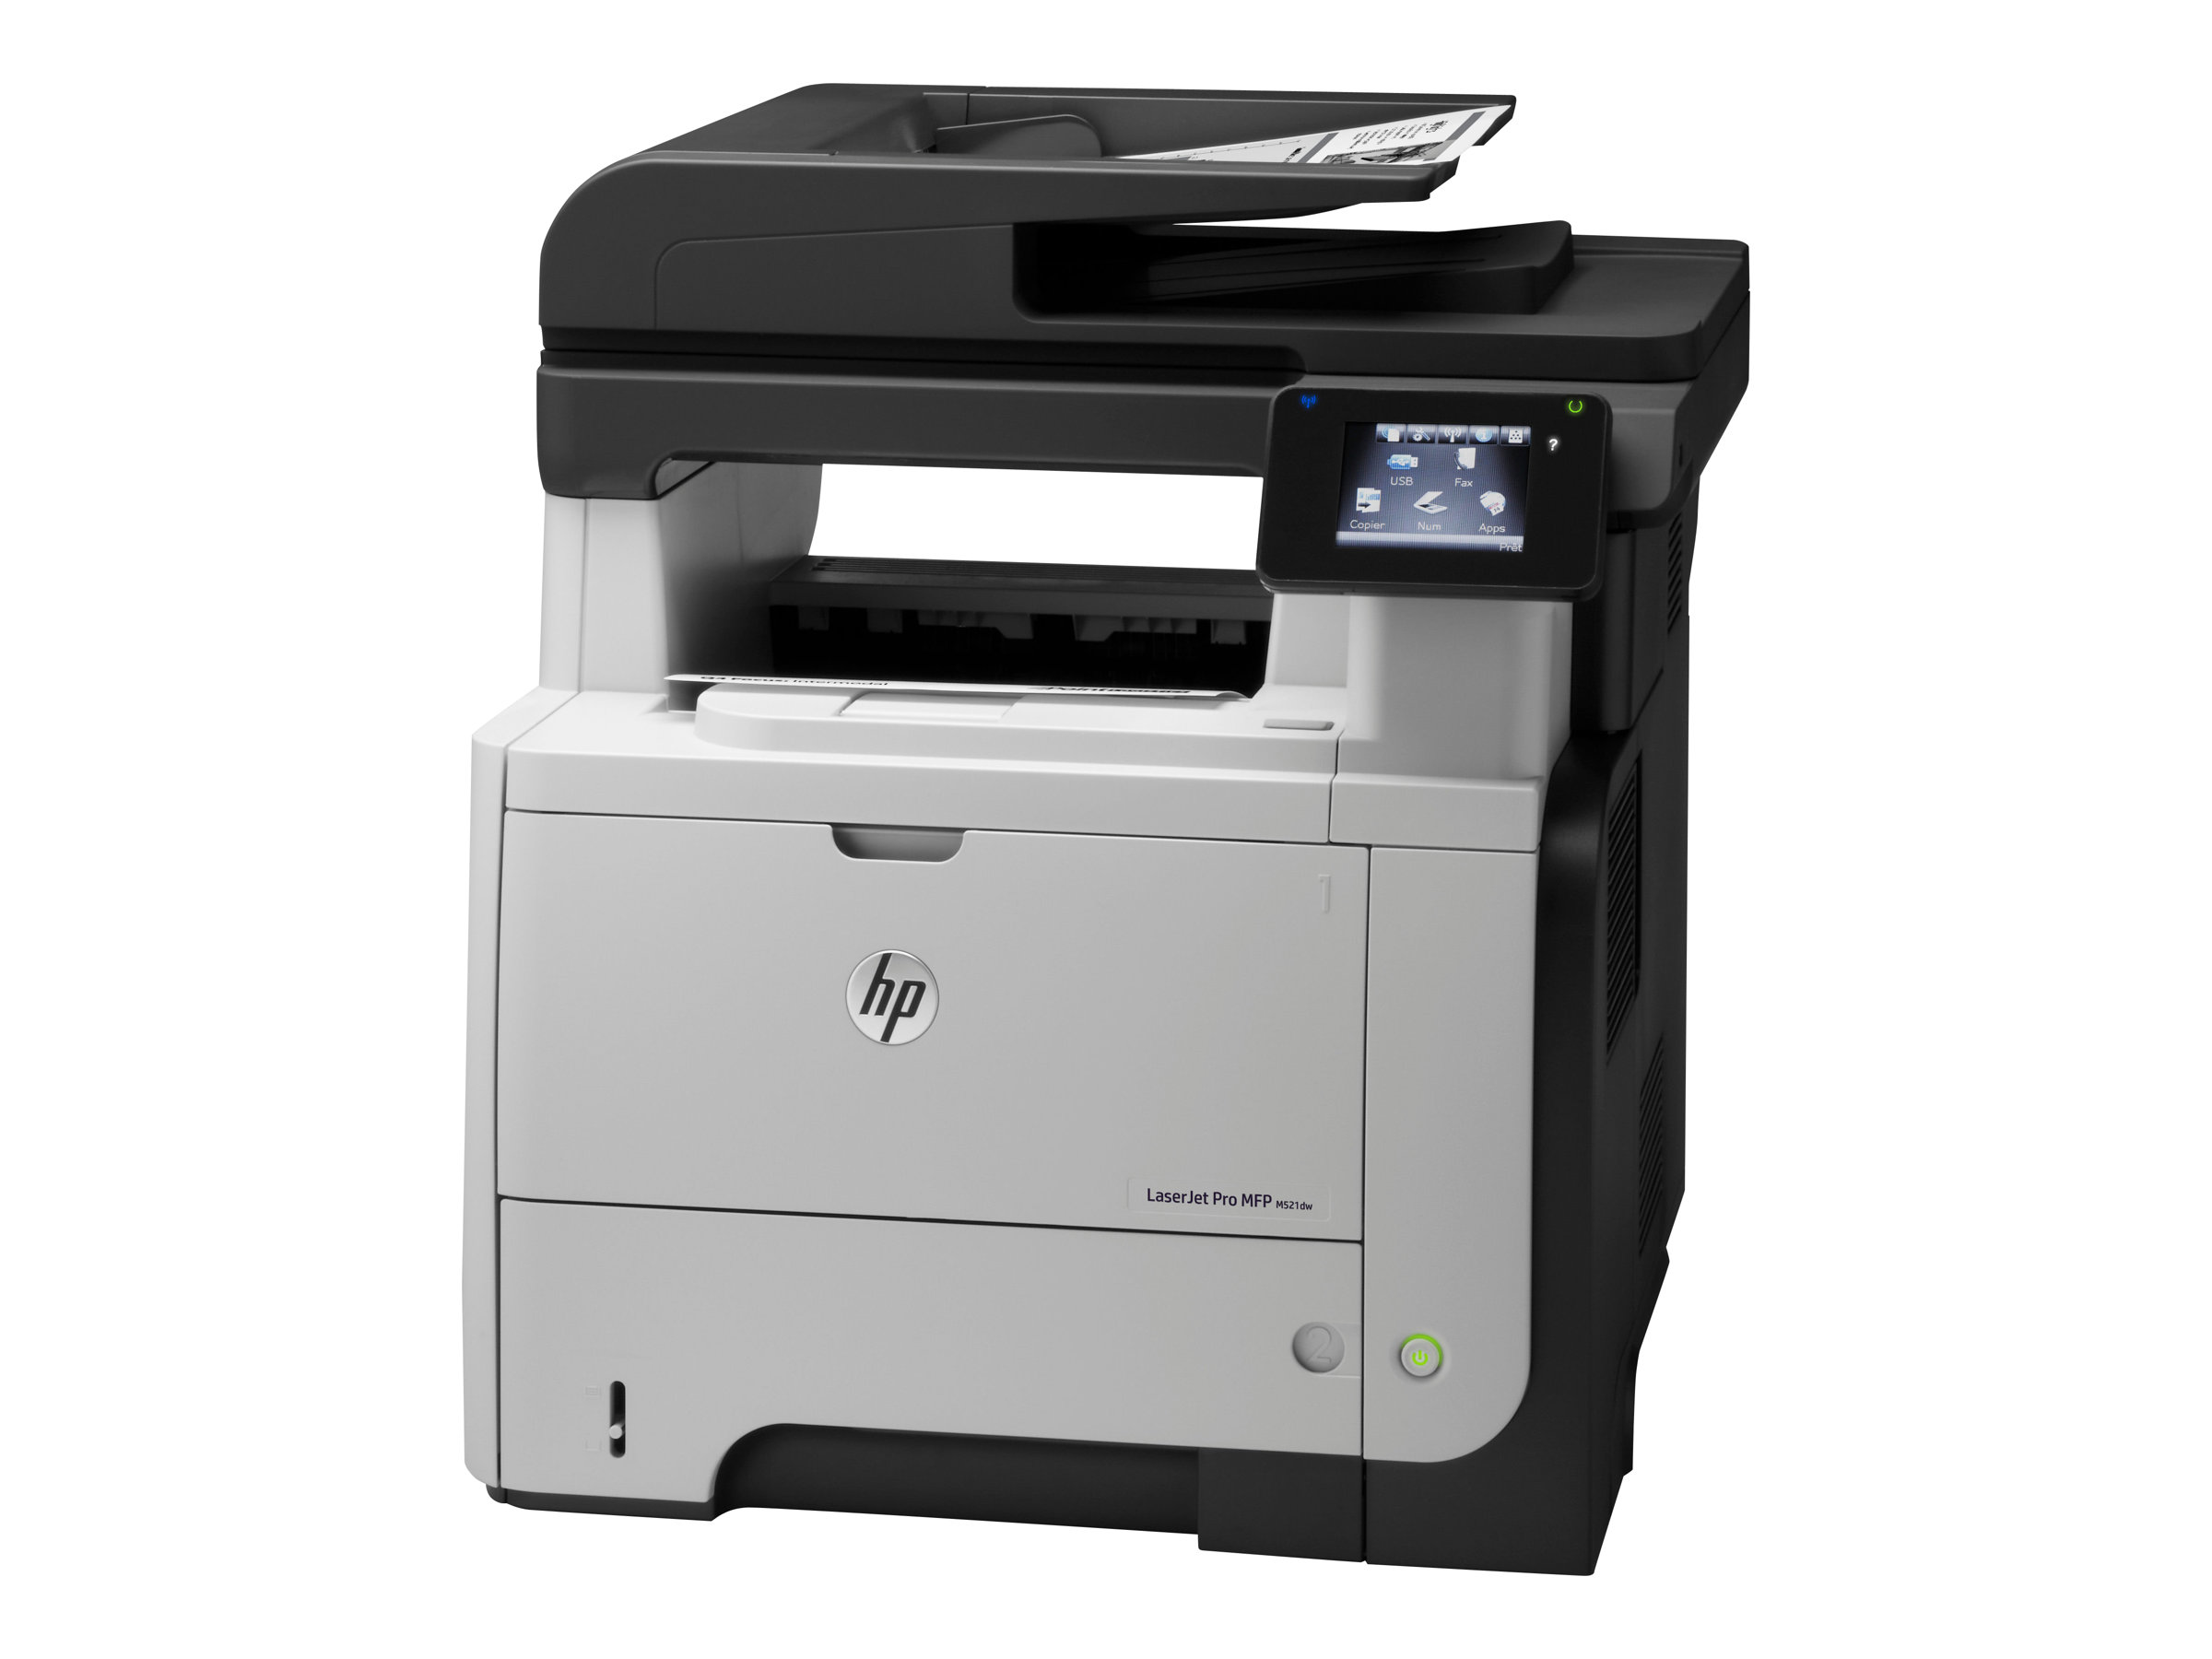 HP LaserJet Pro MFP M521dw - Multifunktionsdrucker - s/w - Laser - Legal (216 x 356 mm) (Original) - A4/Legal (Medien)